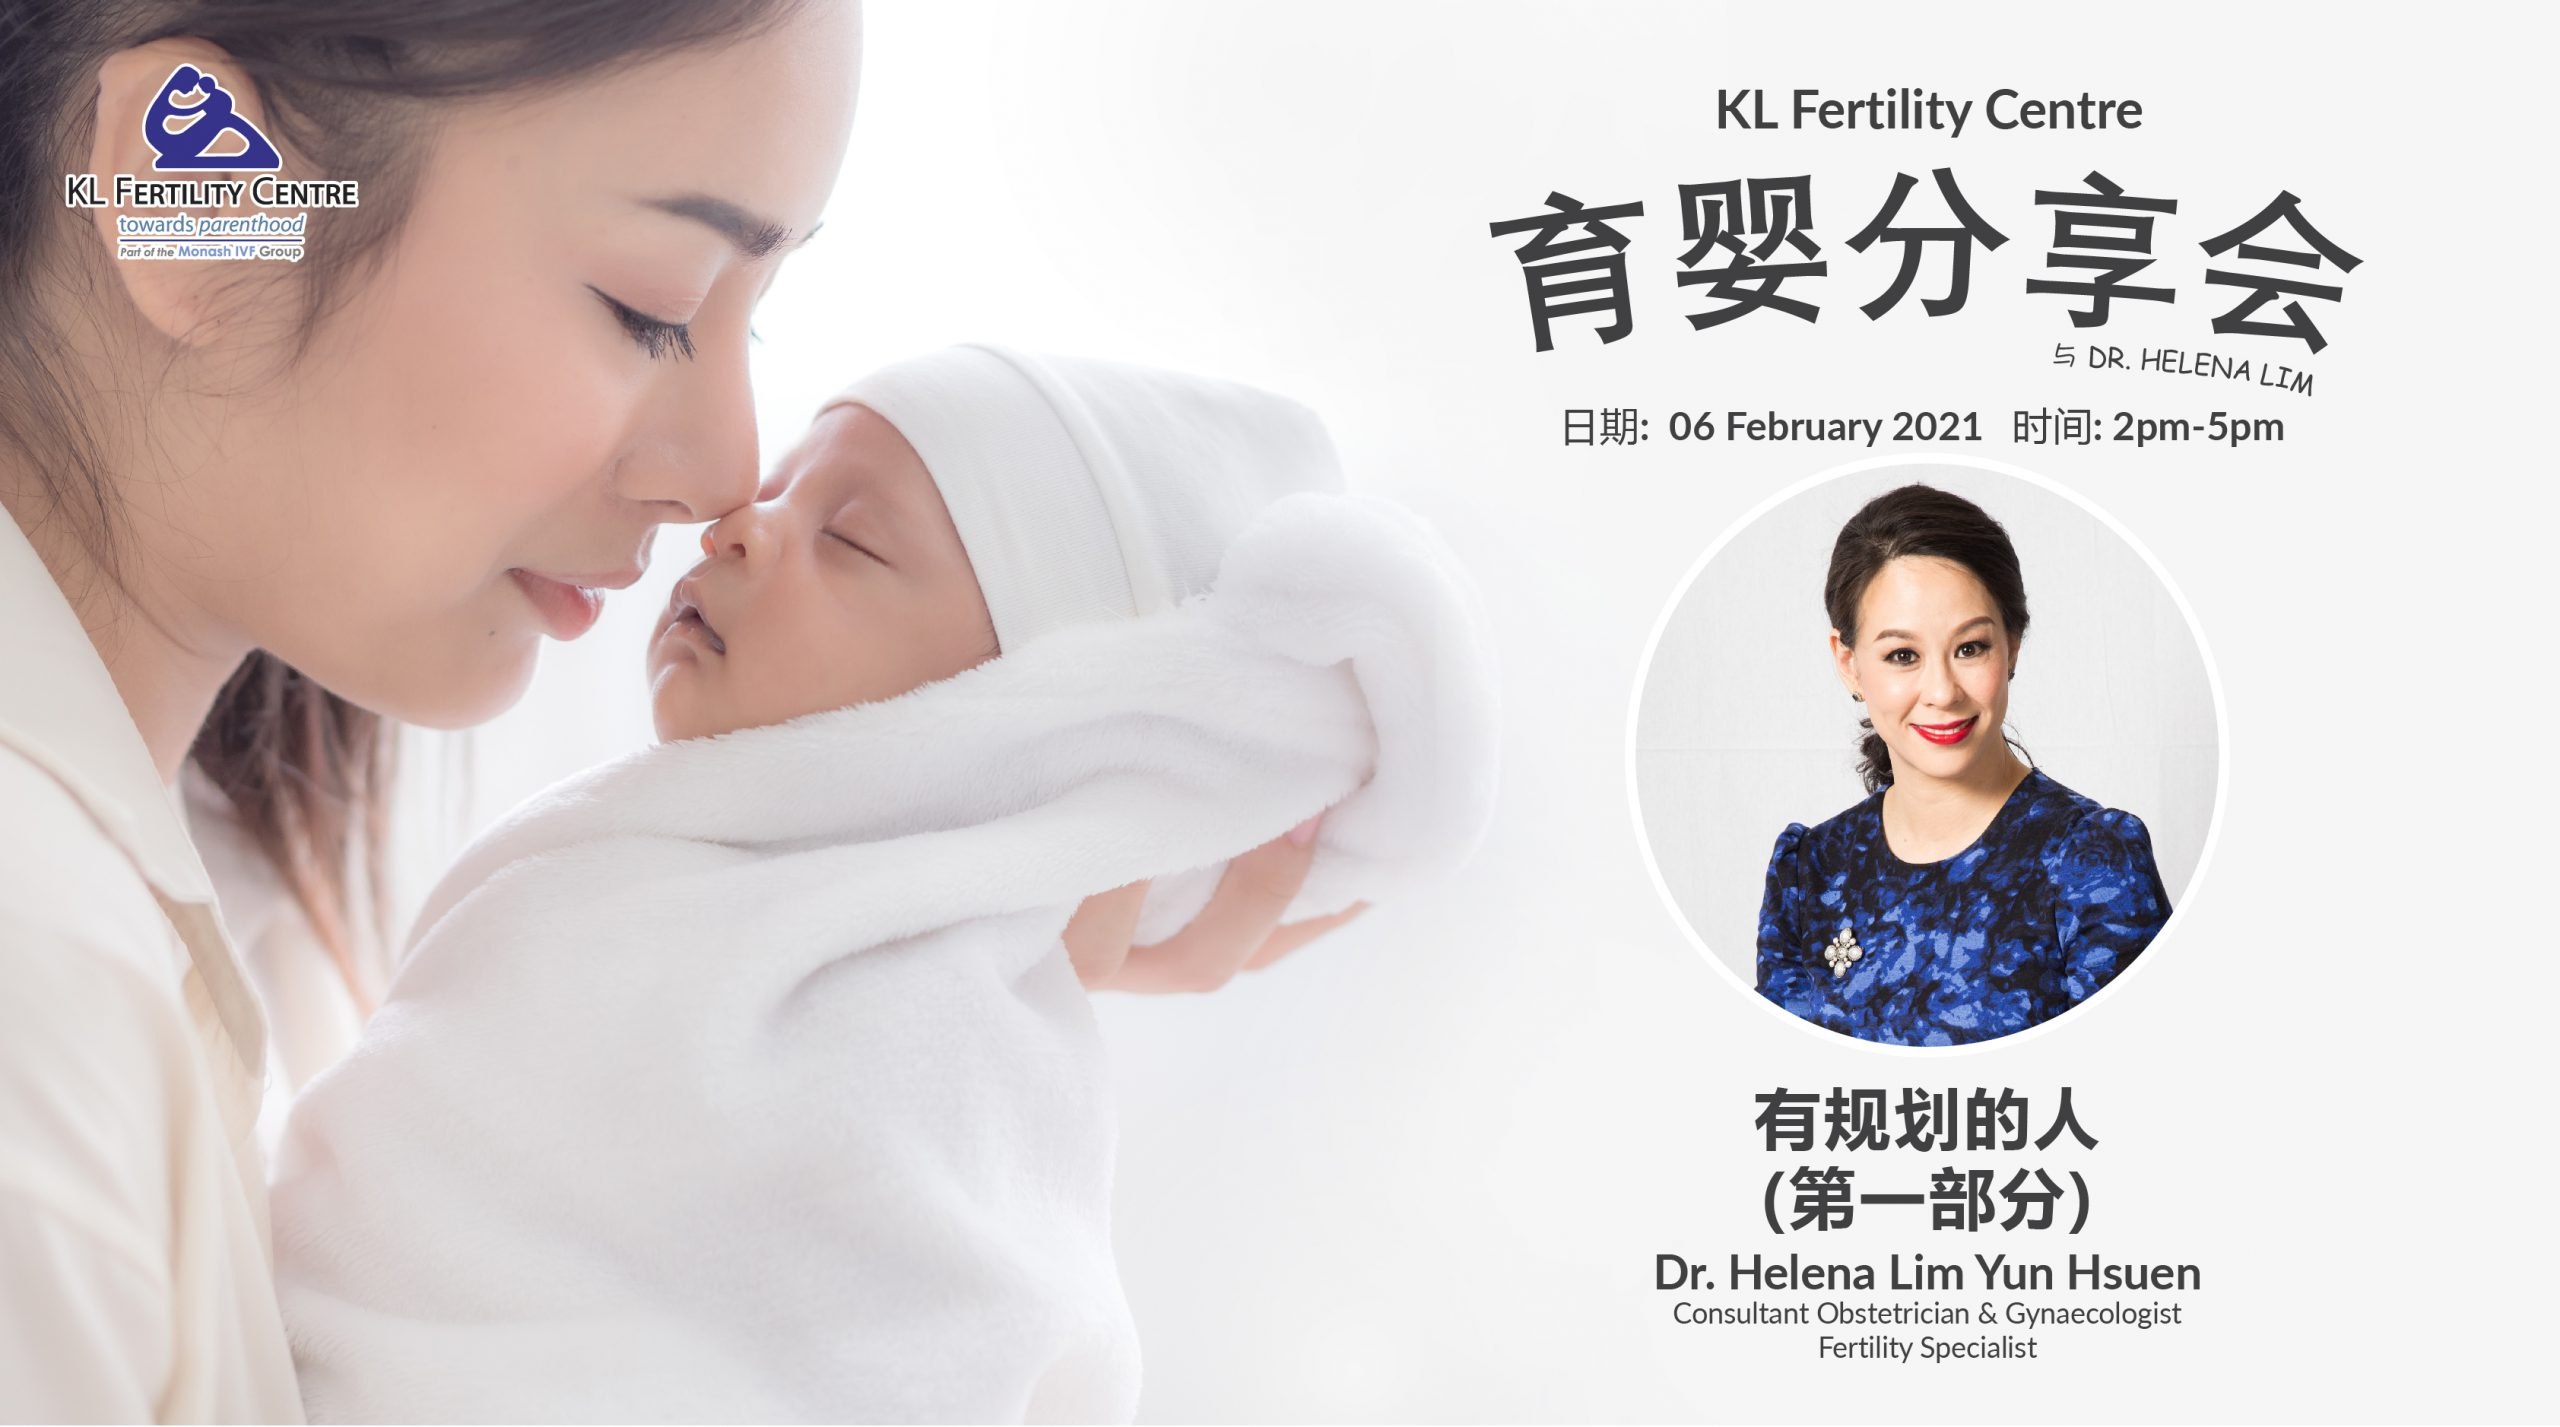 The Fertility Show : The One with The Plan (Part 1), 6 February 2020- Dr. Helena Lim